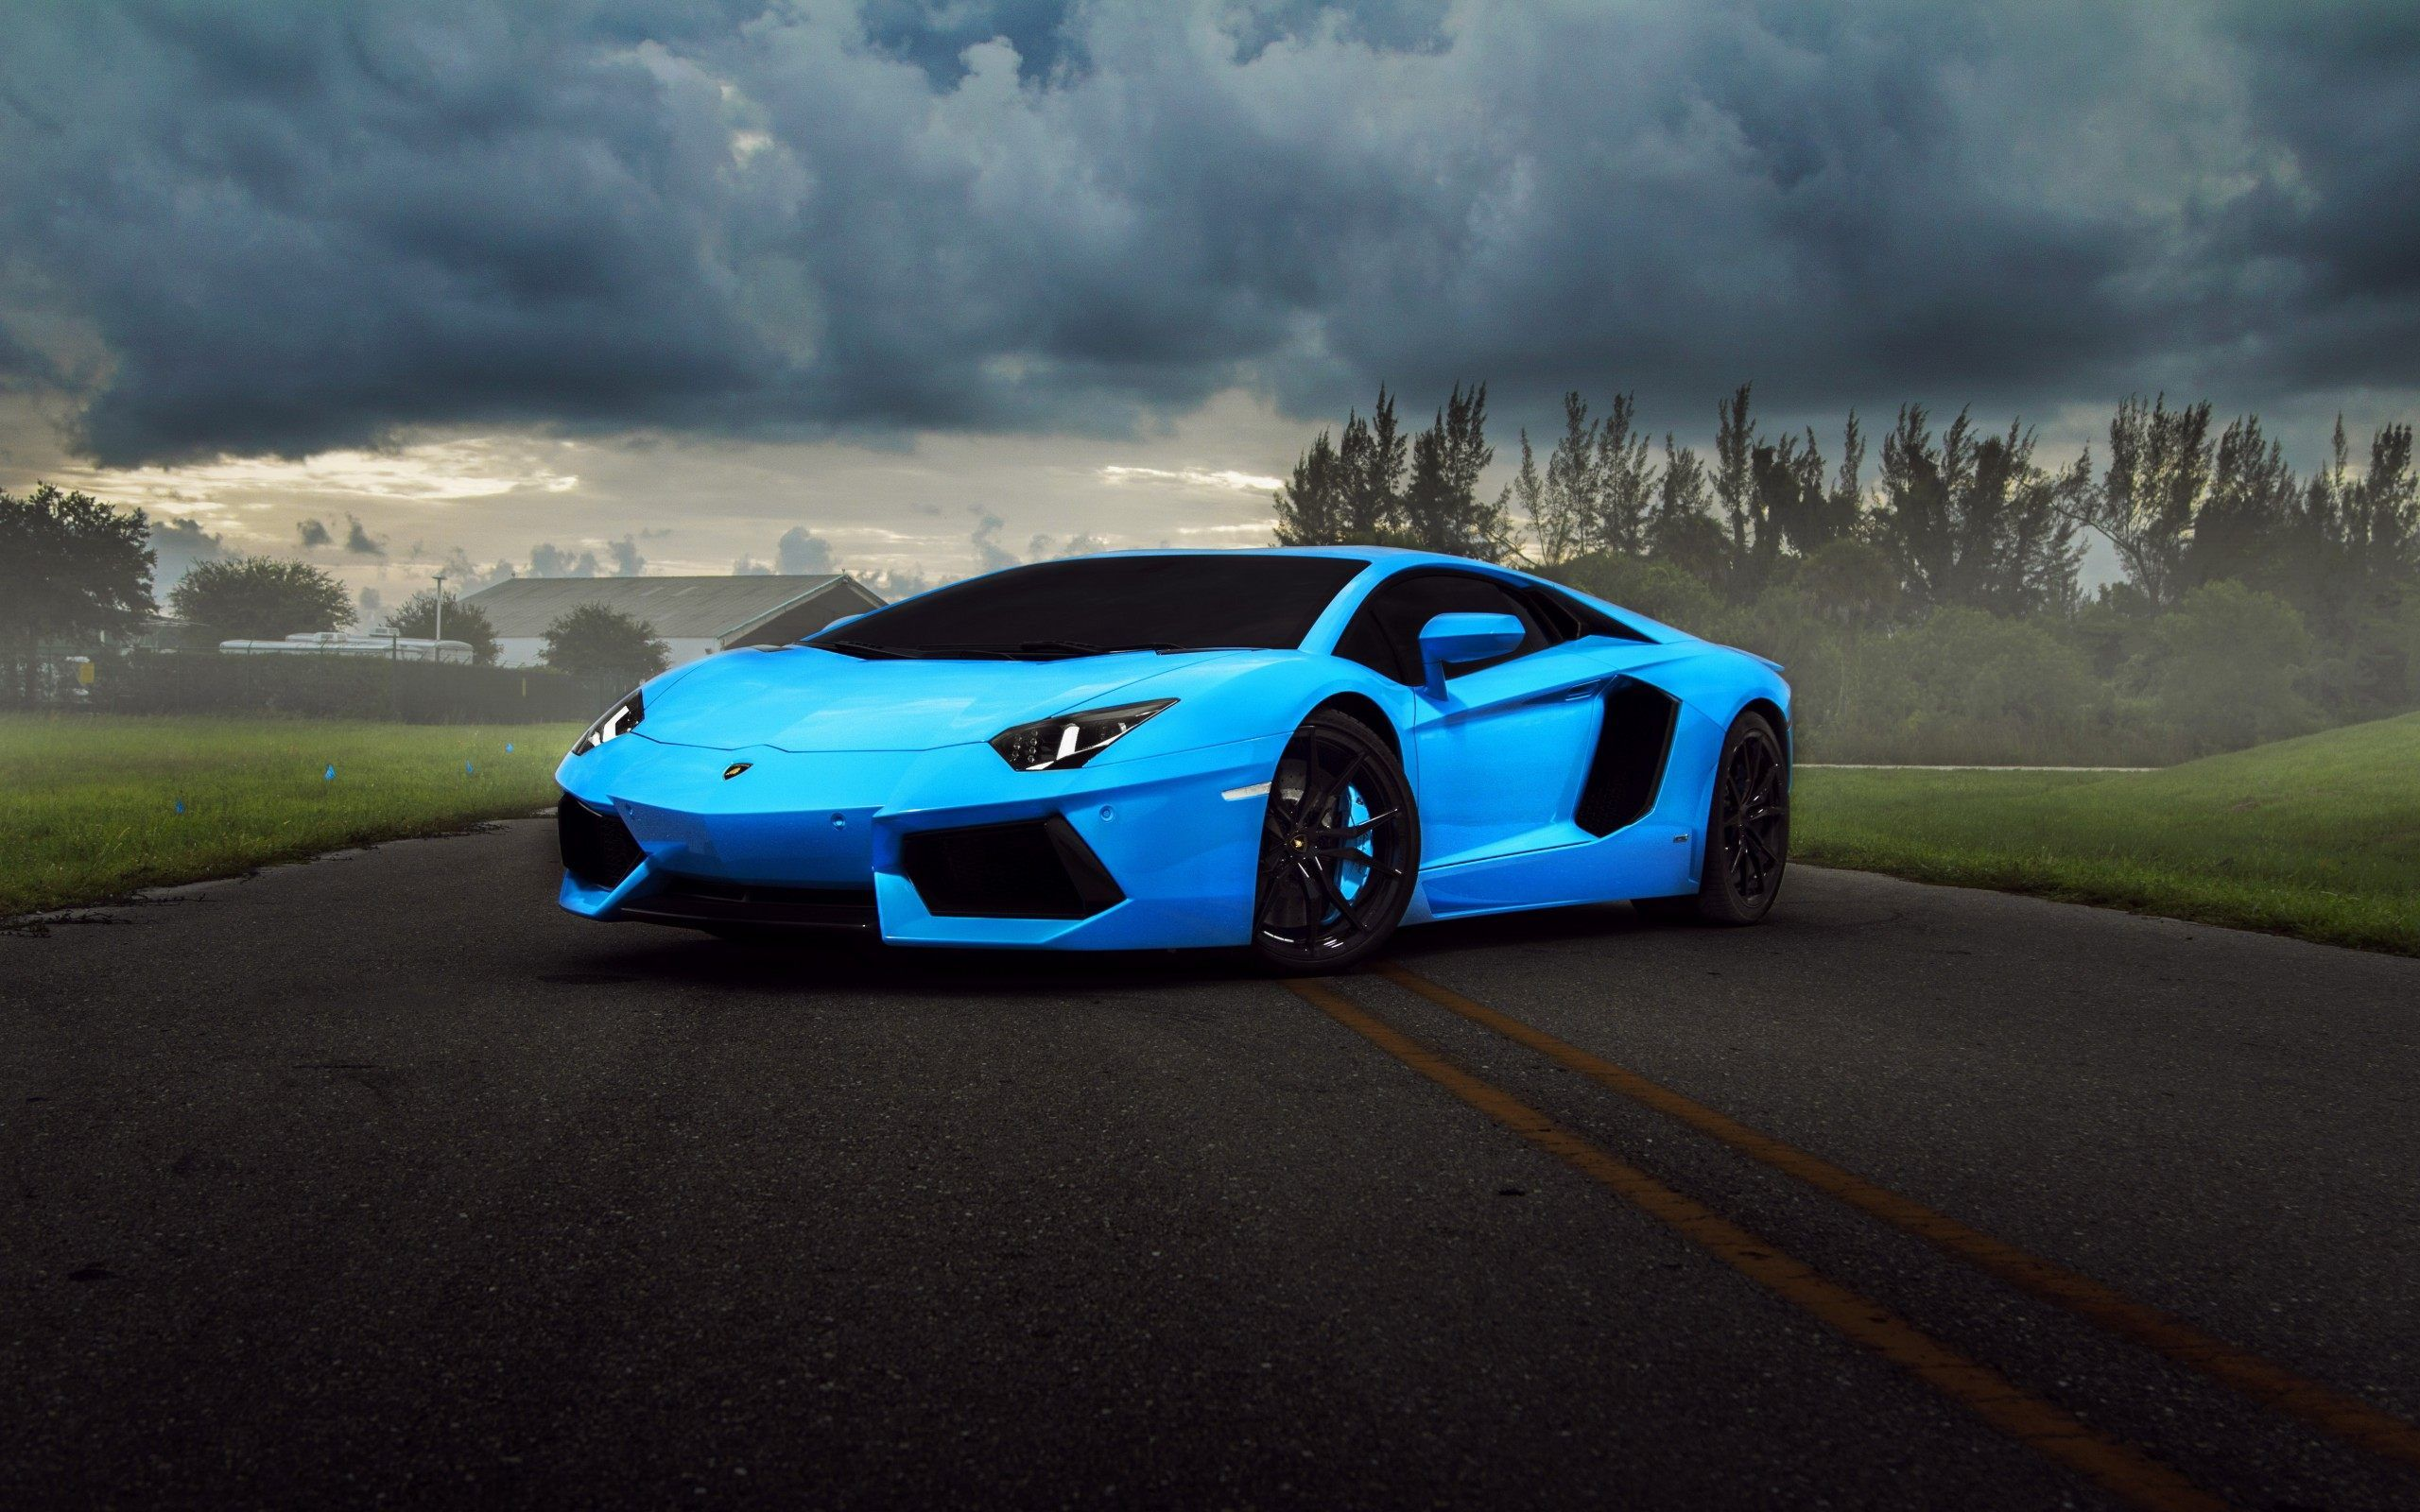 Blue Lamborghini Wallpapers Free Free Download Blue Lamborghini Car Wallpapers Lamborghini Aventador